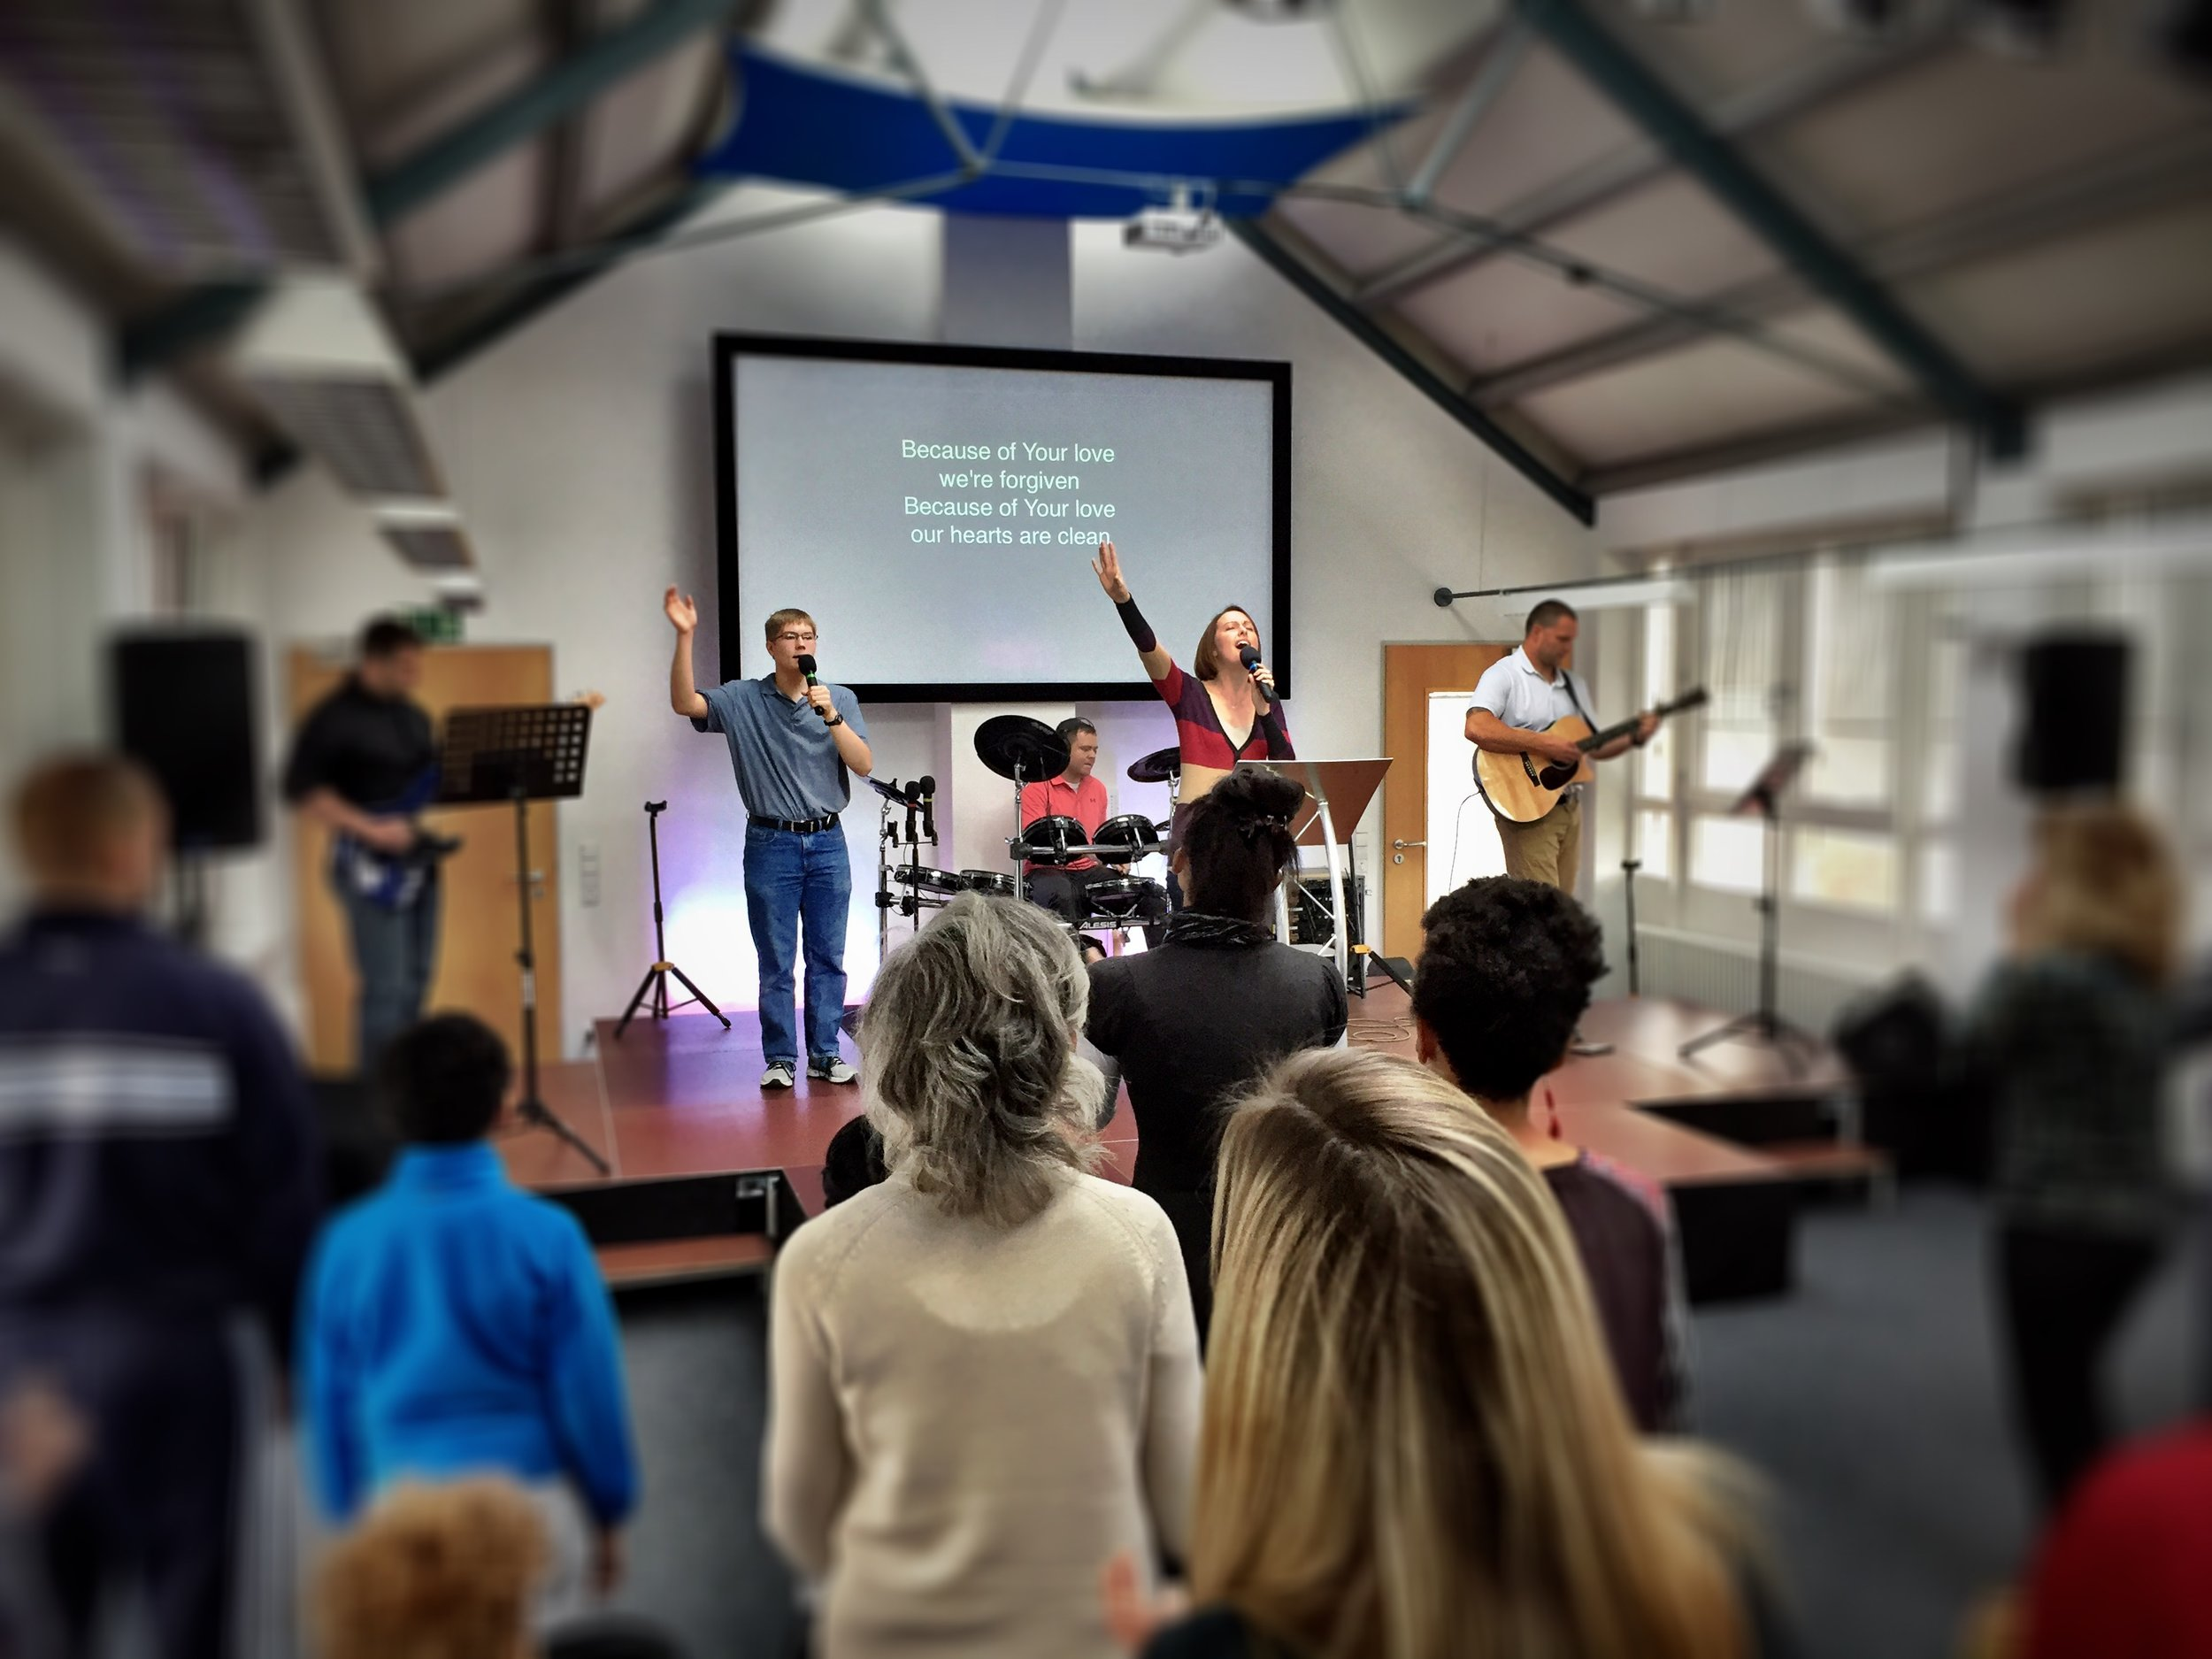 Stacey and the worship team leading the song service in the new building.